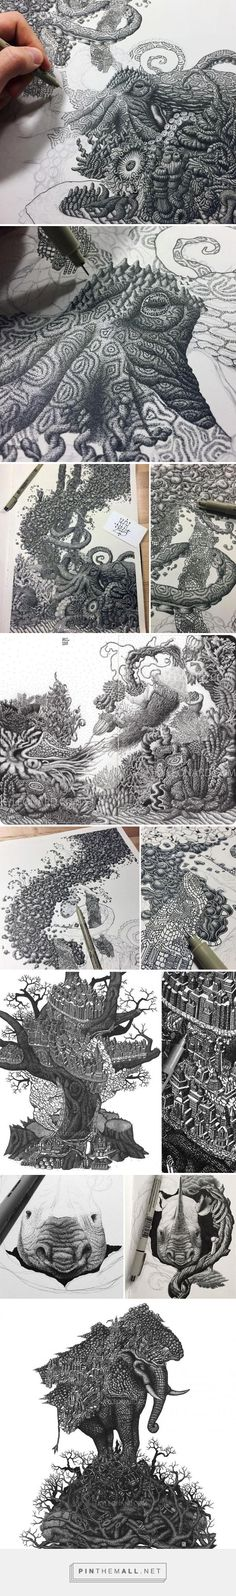 "California artist Kyle Leonard, who draws stunningly detailed stippled art with millions of dots, is inspired by the natural world and politics, especially the politics that affect the way we treat the environment. ""I draw everyday as a creative outlet and for the meditative quality of it."" He spends about 6 to 100 hours on each piece depending on size and complexity."